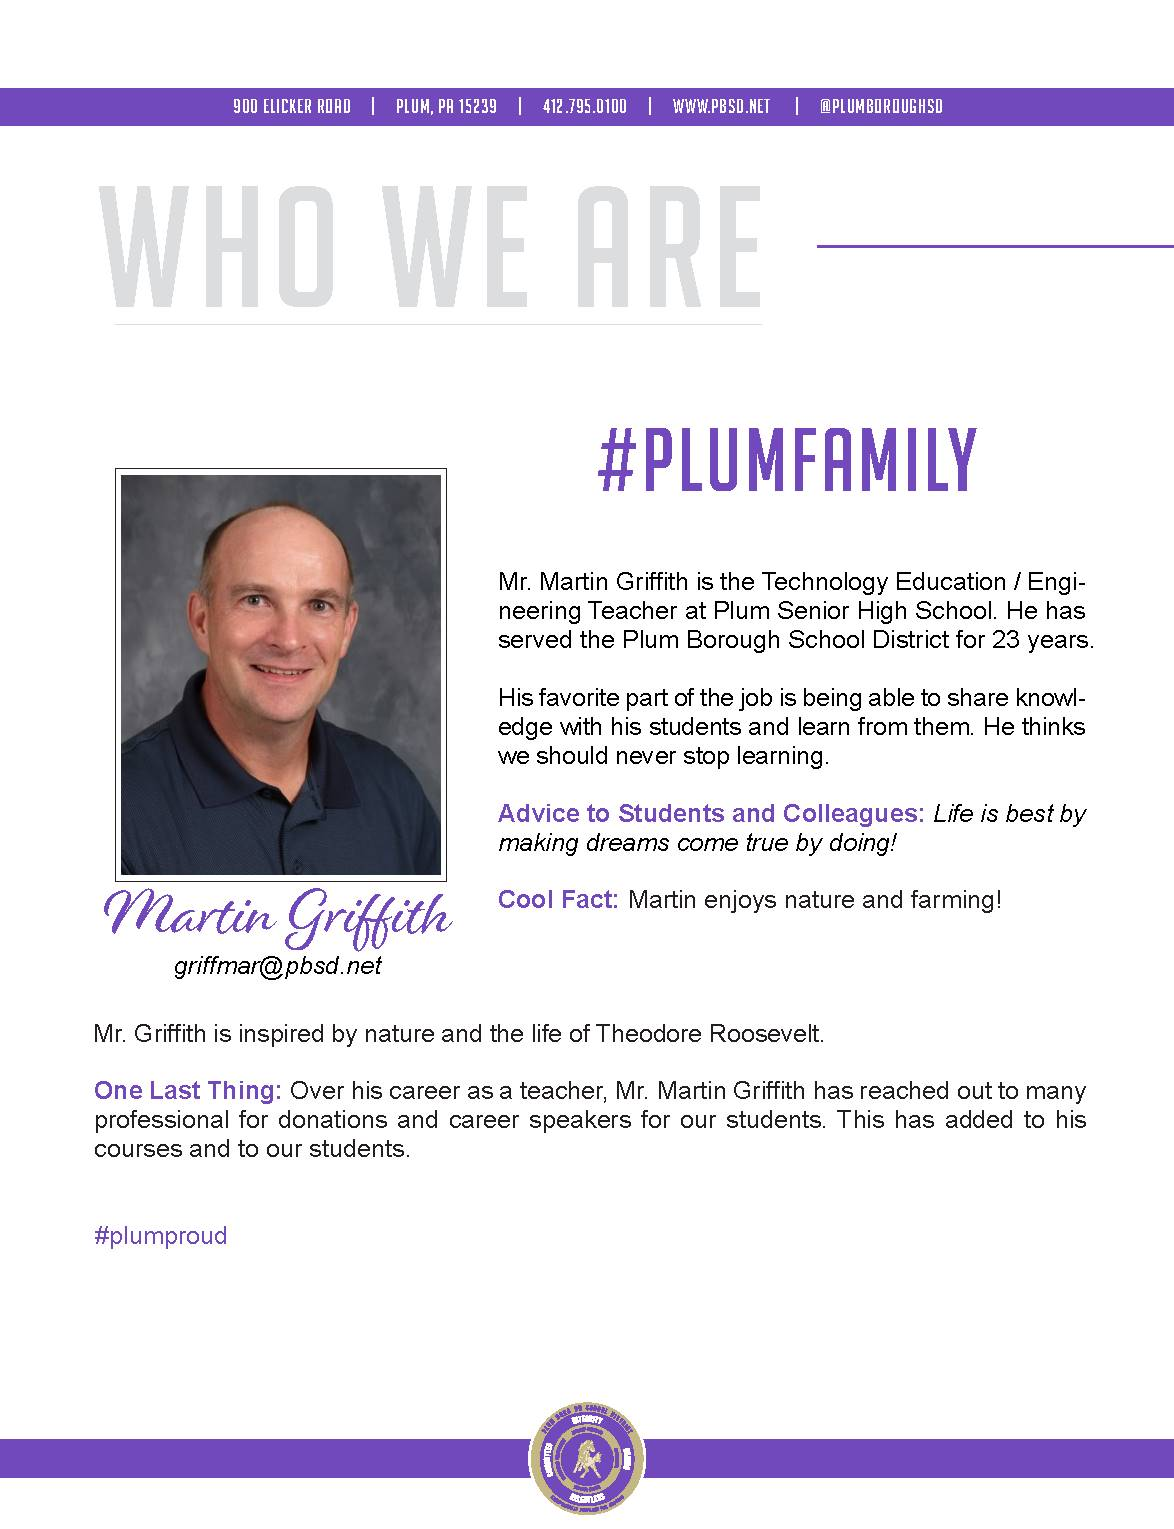 Who We Are Wednesday features Martin Griffith.